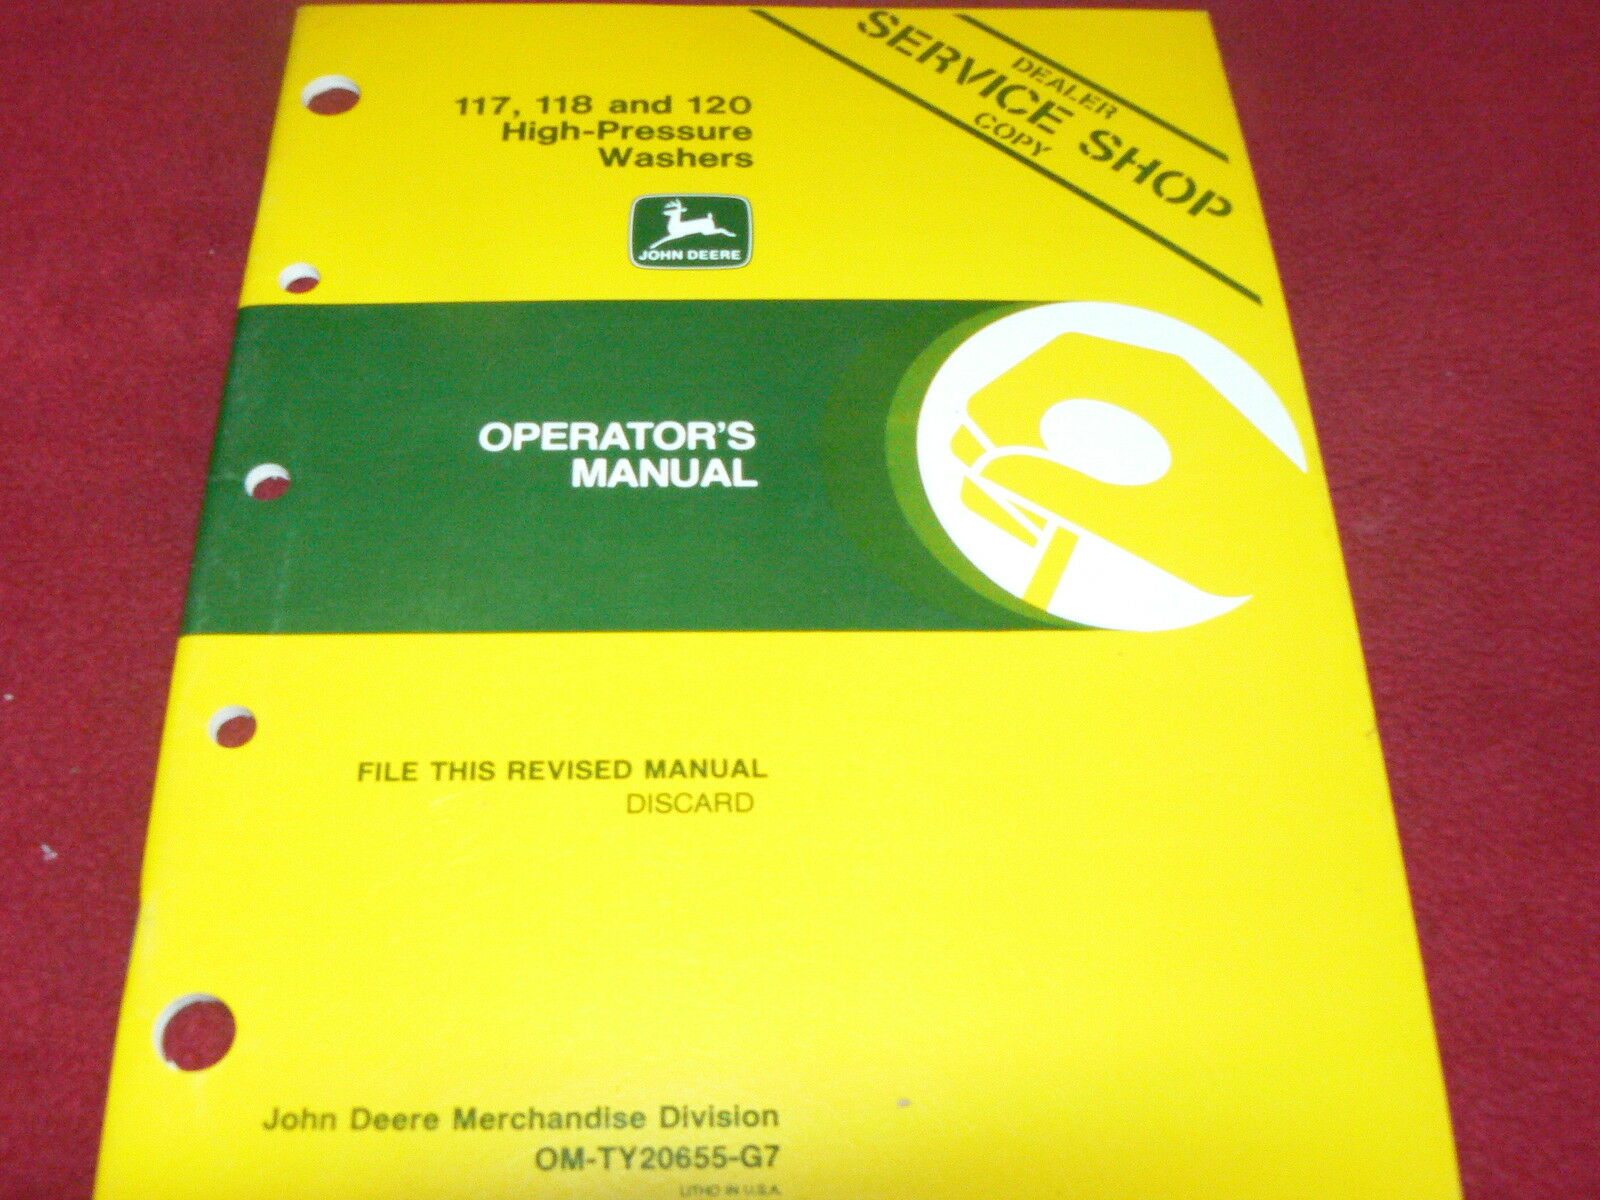 John Deere 117 118 & 120 High Pressure Washer Operator's Manual 1 of 1Only  1 available ...